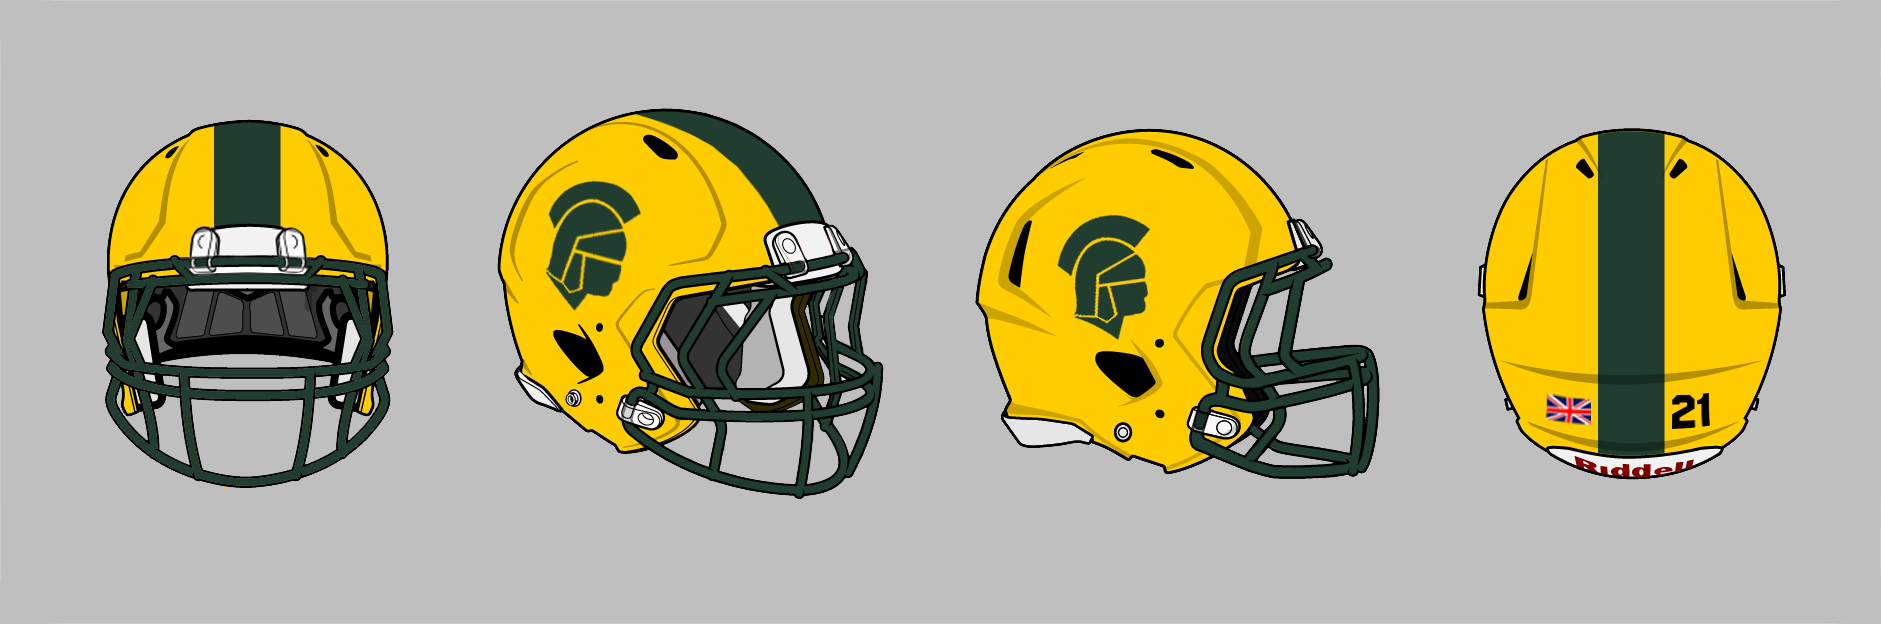 Riddell Revo Speed Template Psd By Marble21 On Deviantart